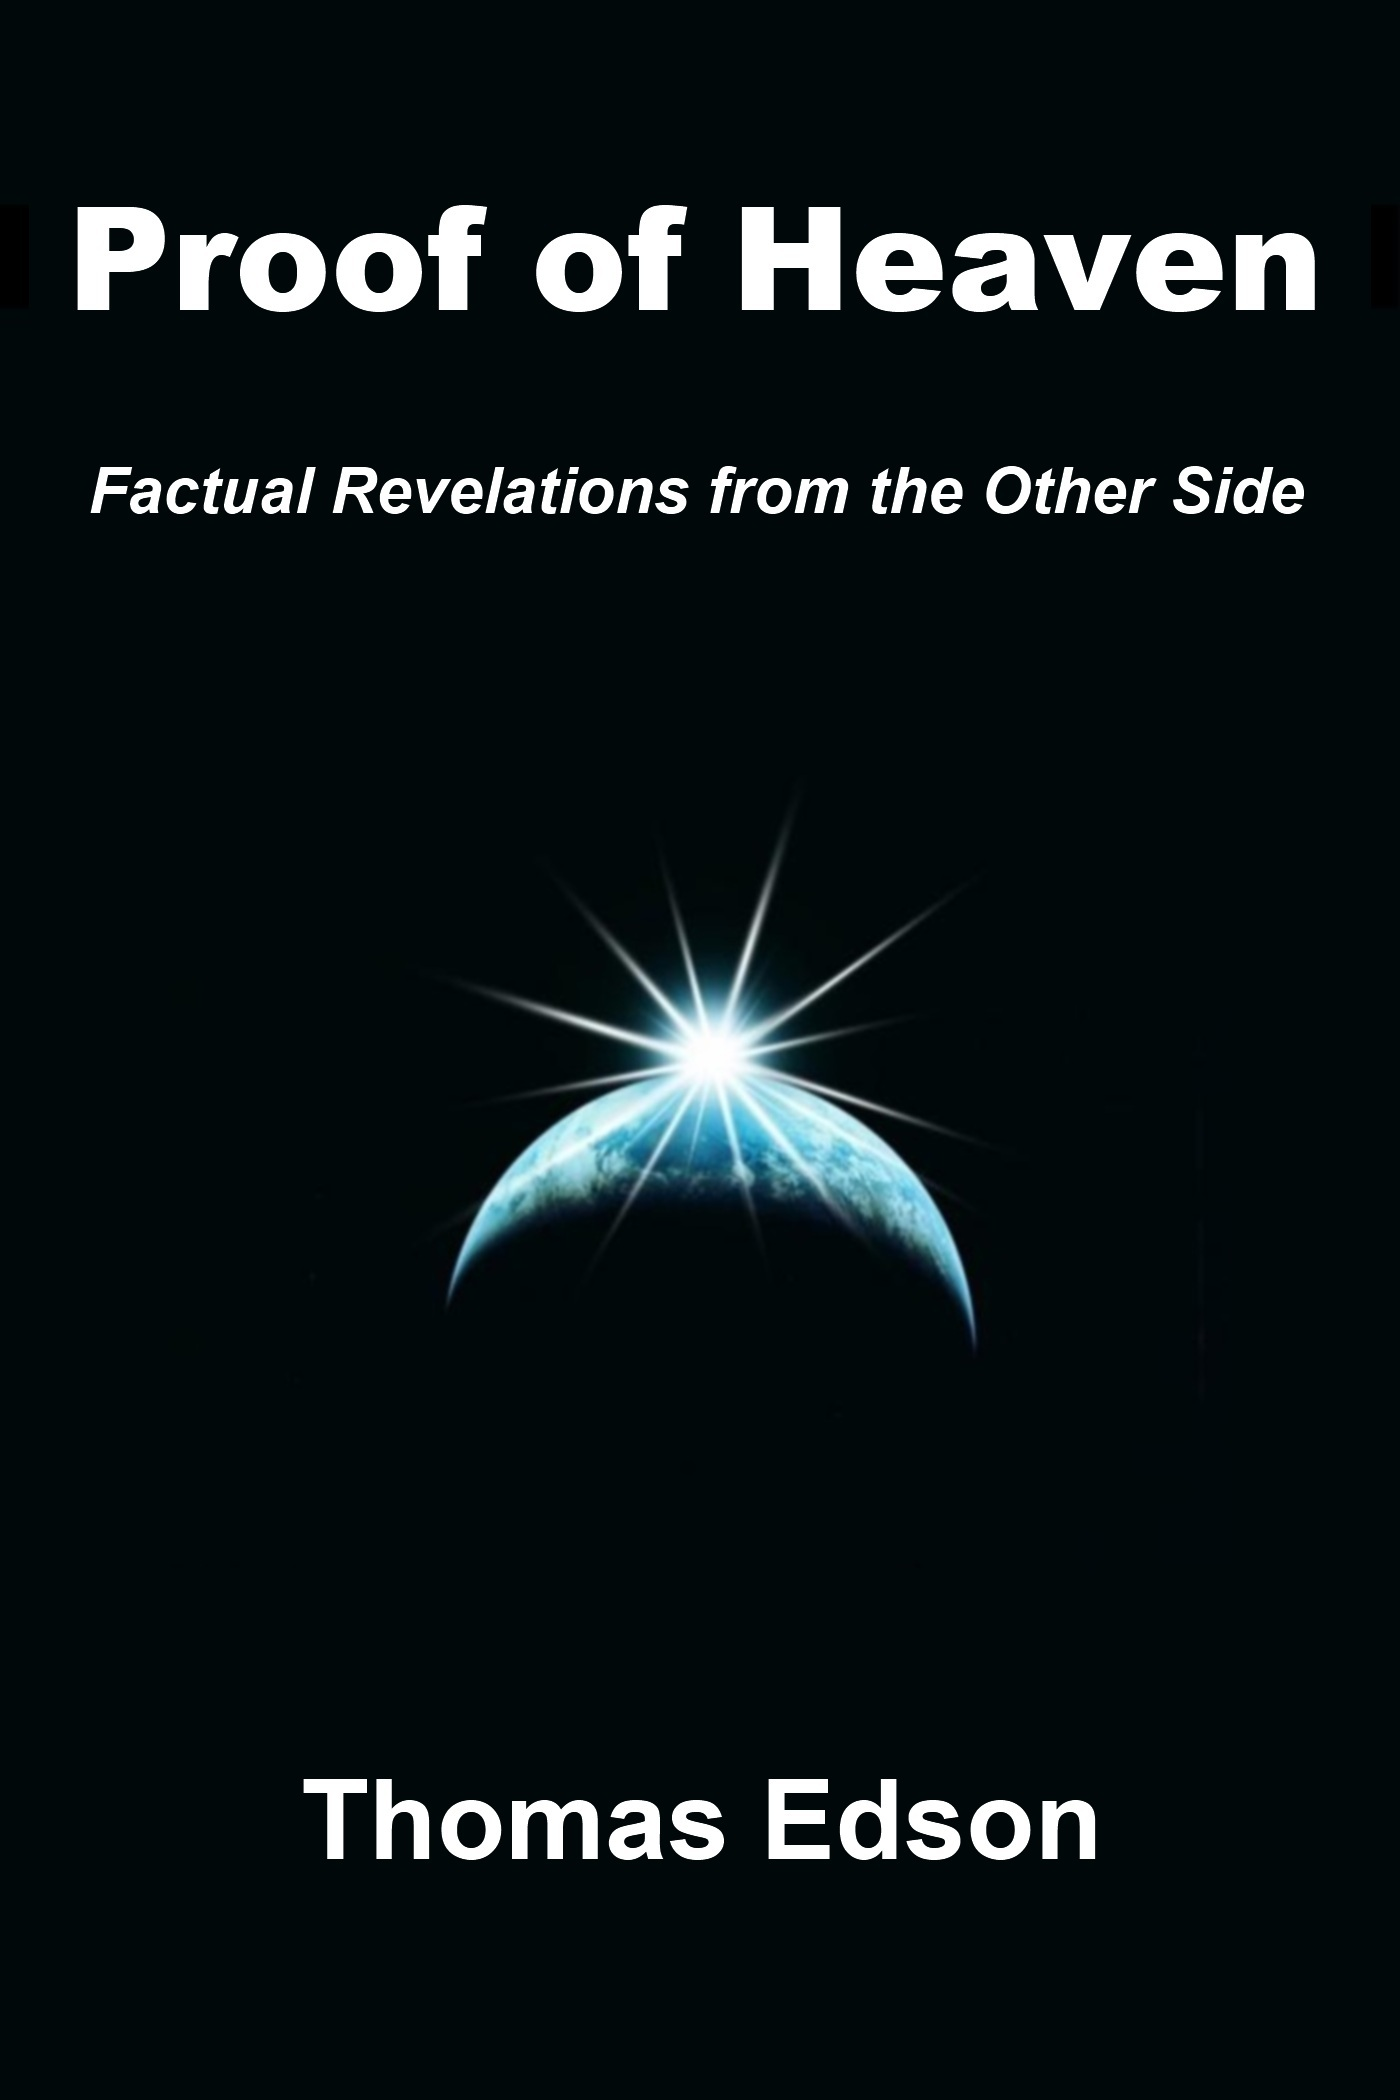 Proof of Heaven: Factual Revelations from the Other Side